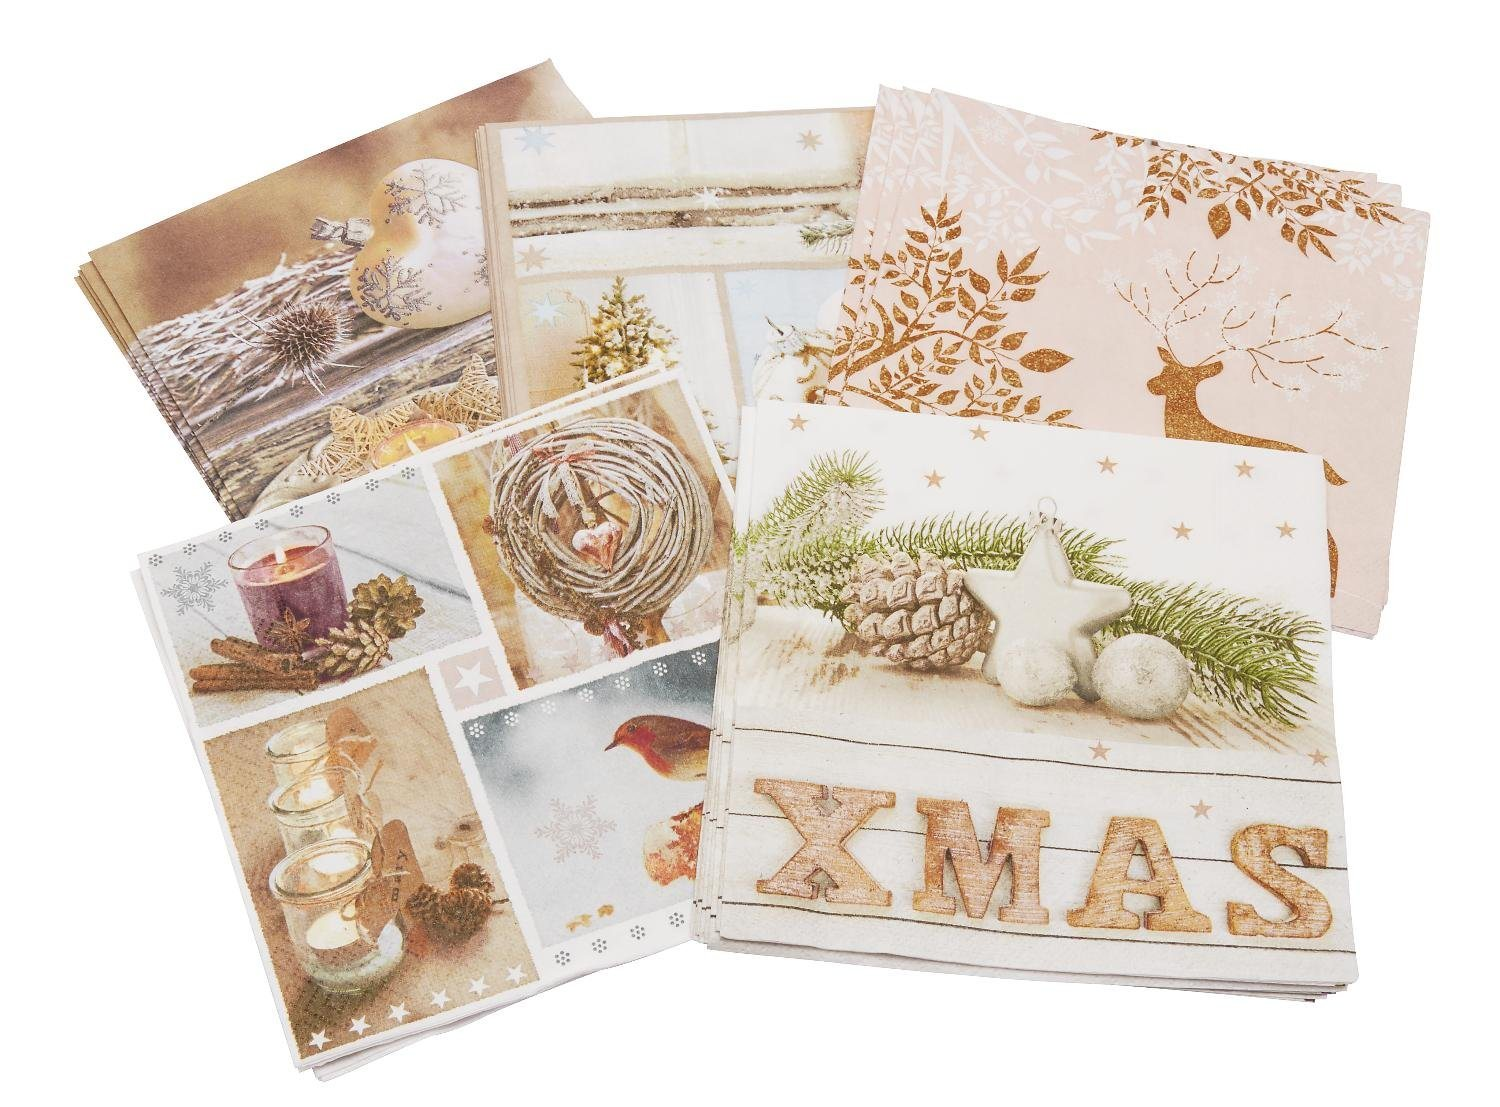 VBS Servietten-Set ´´Home for Christmas´´, 20-teilig, VBS-Set | Heimtextilien > Tischdecken und Co > Servietten | Papier | VBS